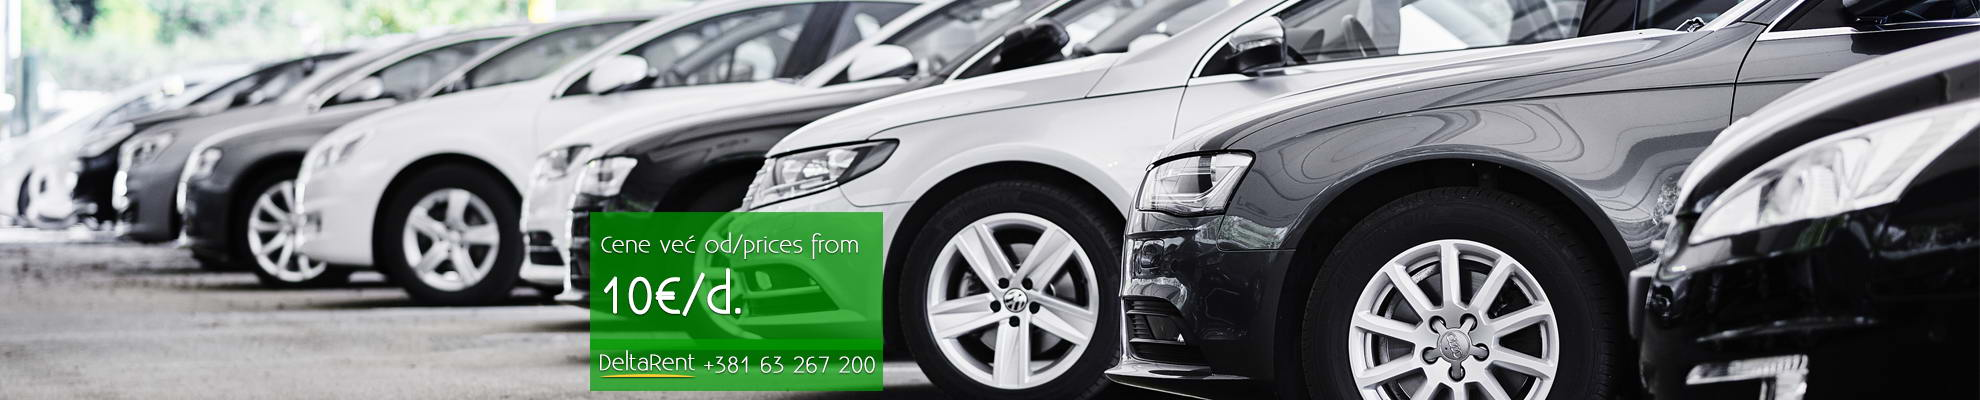 Rent a car Belgrade, prices from 12 euros, rental: DeltaRent